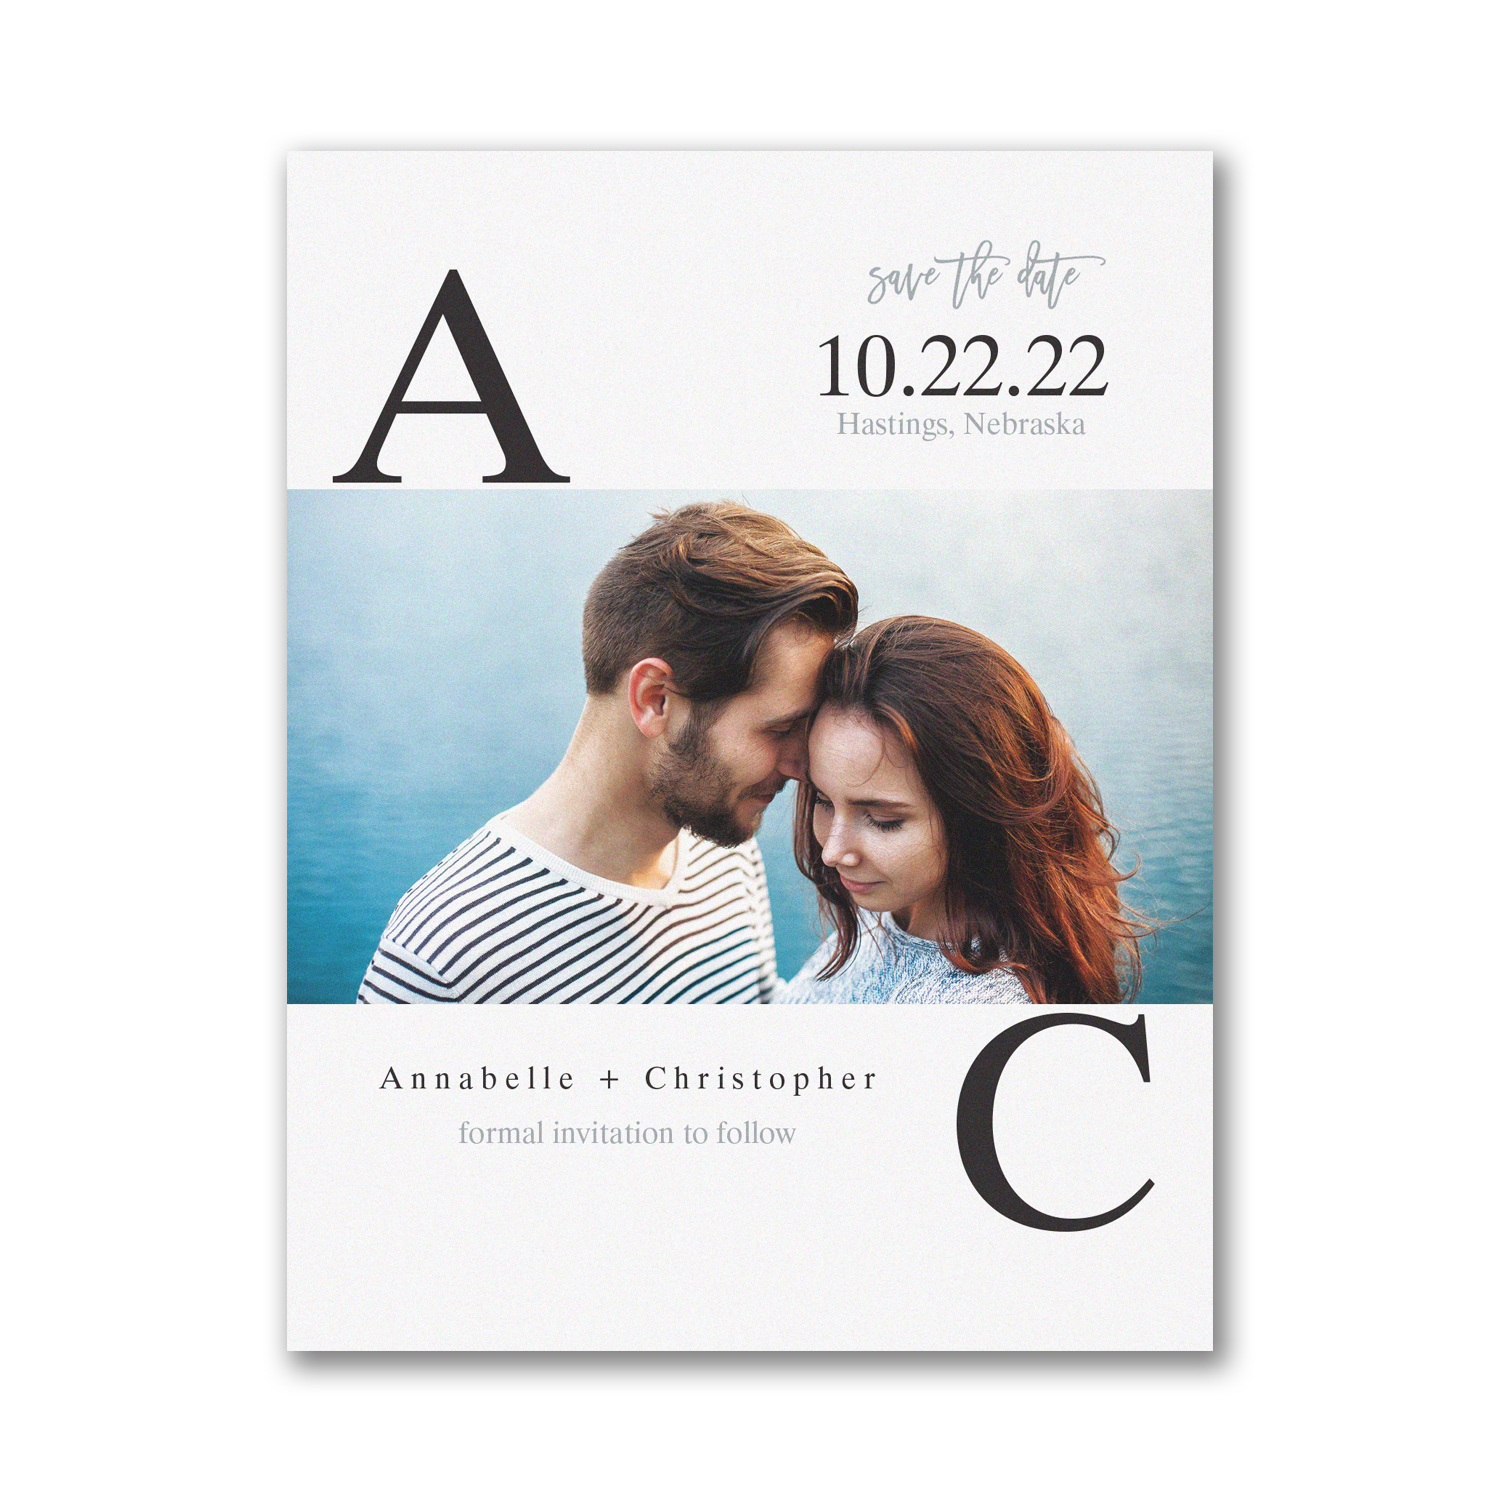 Broad Initials photo save the date carlson craft